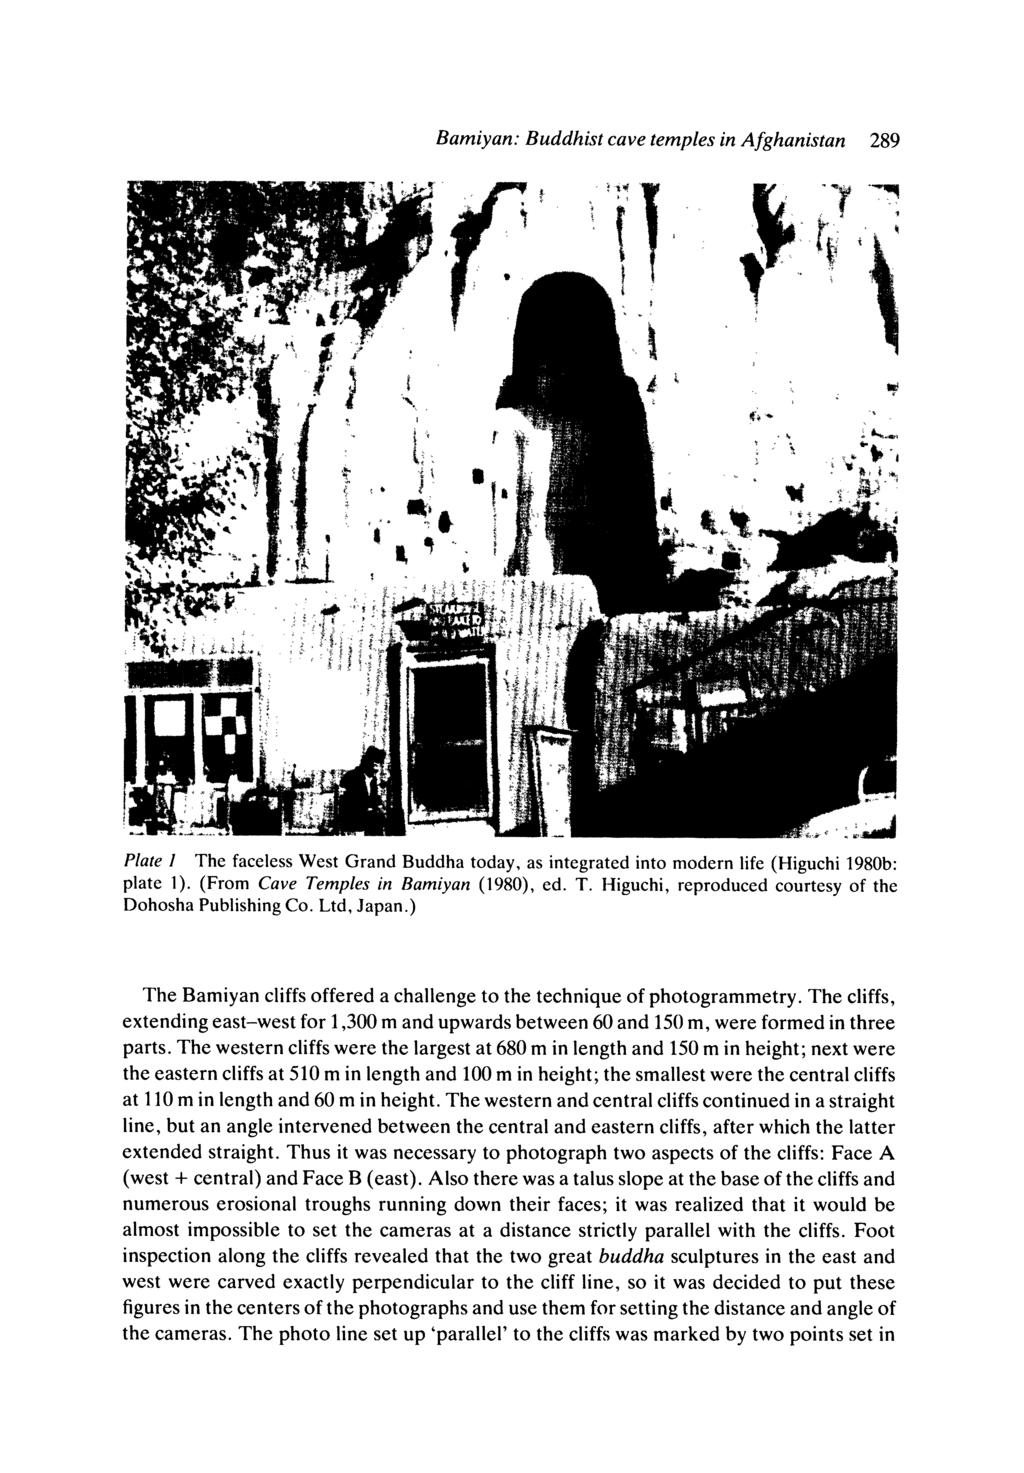 _ j _ Bamiyan: Buddhist cave temples in Afghanistan 289 ^~~~' j~ Swtt*a*^ ttw^ L r I~Oa r Ok m i iti,>4 IL AA Plate I The faceless West Grand Buddha today, as integrated into modern life (Higuchi